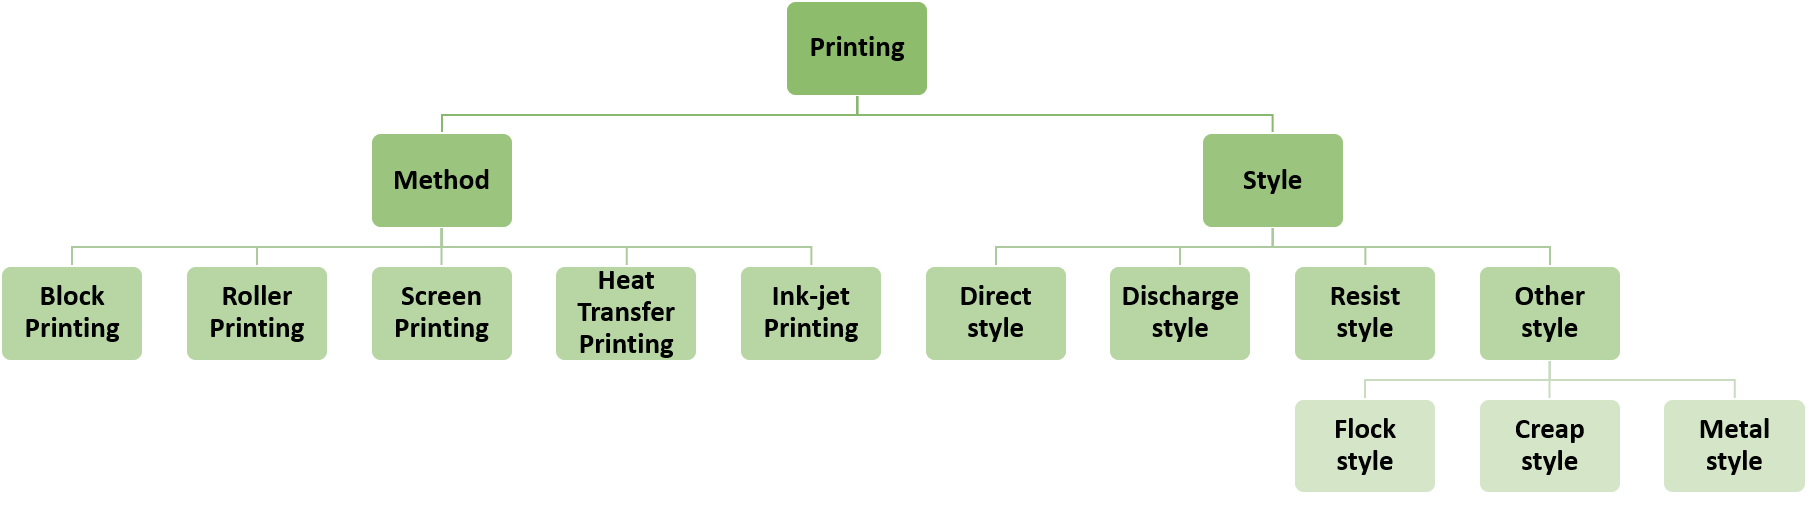 Classification of Printing